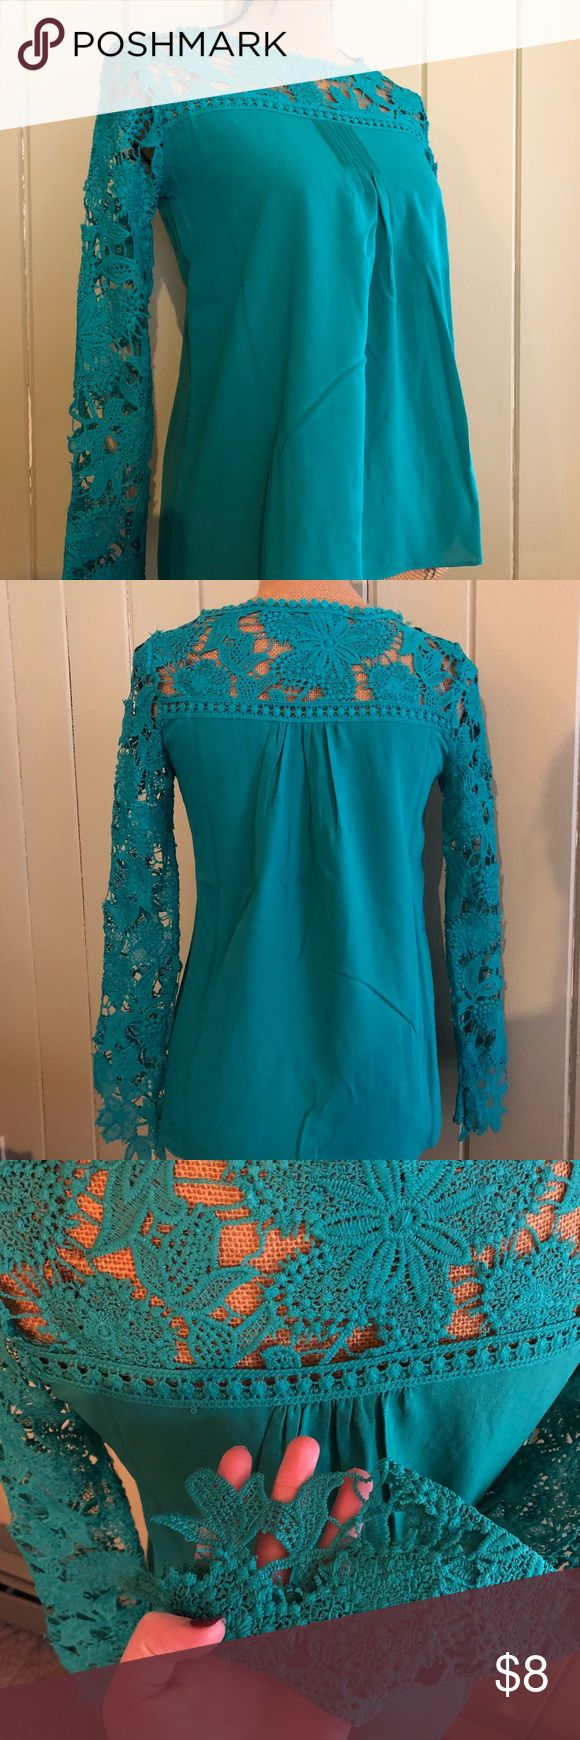 Teal Blouse Like new! Worn once for a performance. A bit tight in the shoulders, fits more like an XS. Tops Blouses